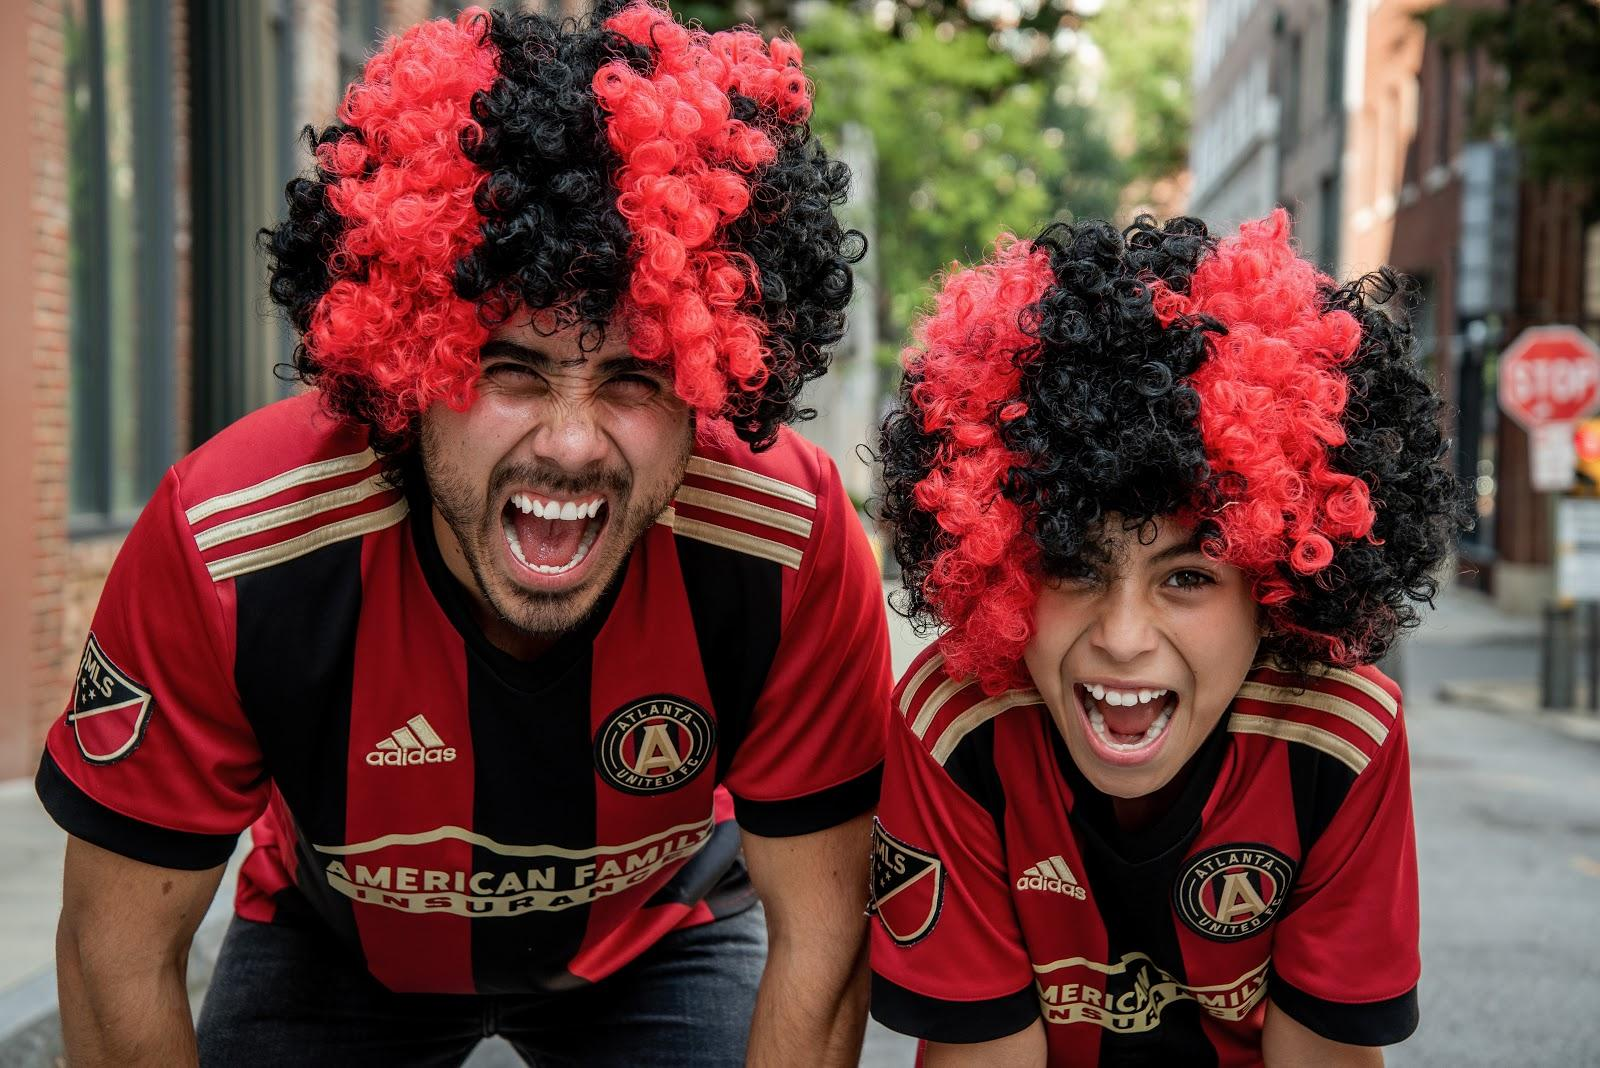 Football fans with wigs